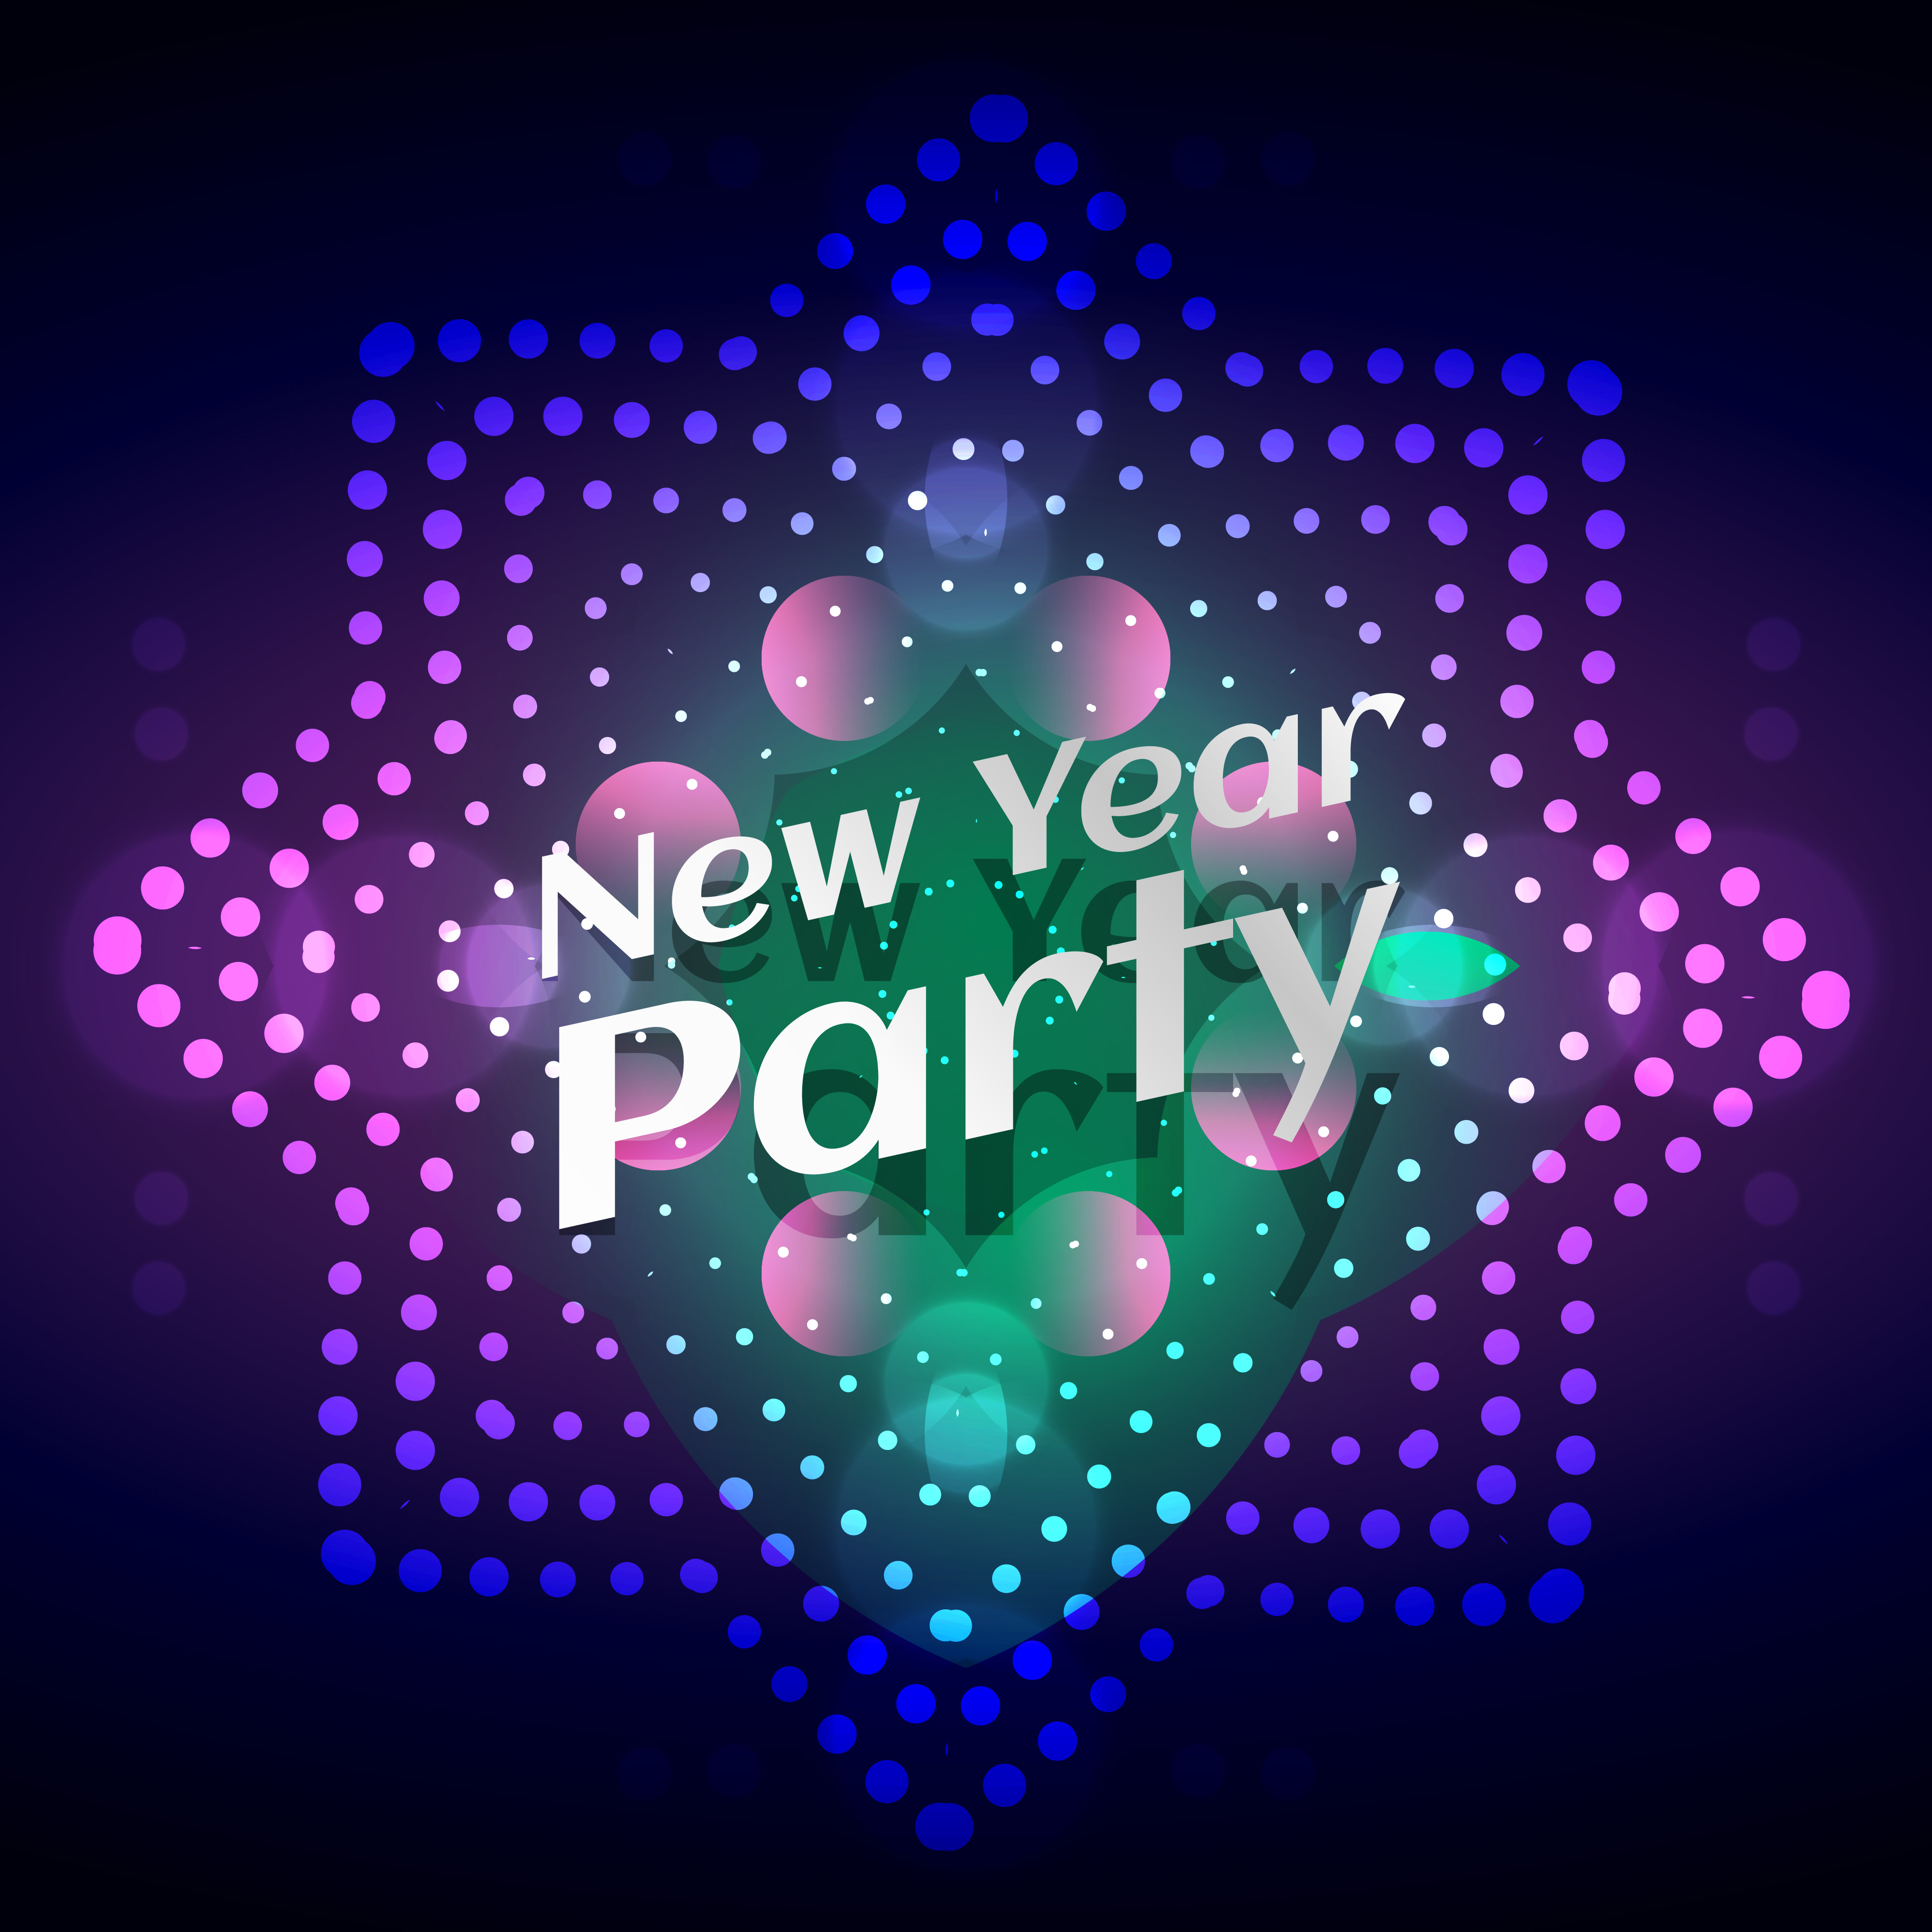 glow party free vector art